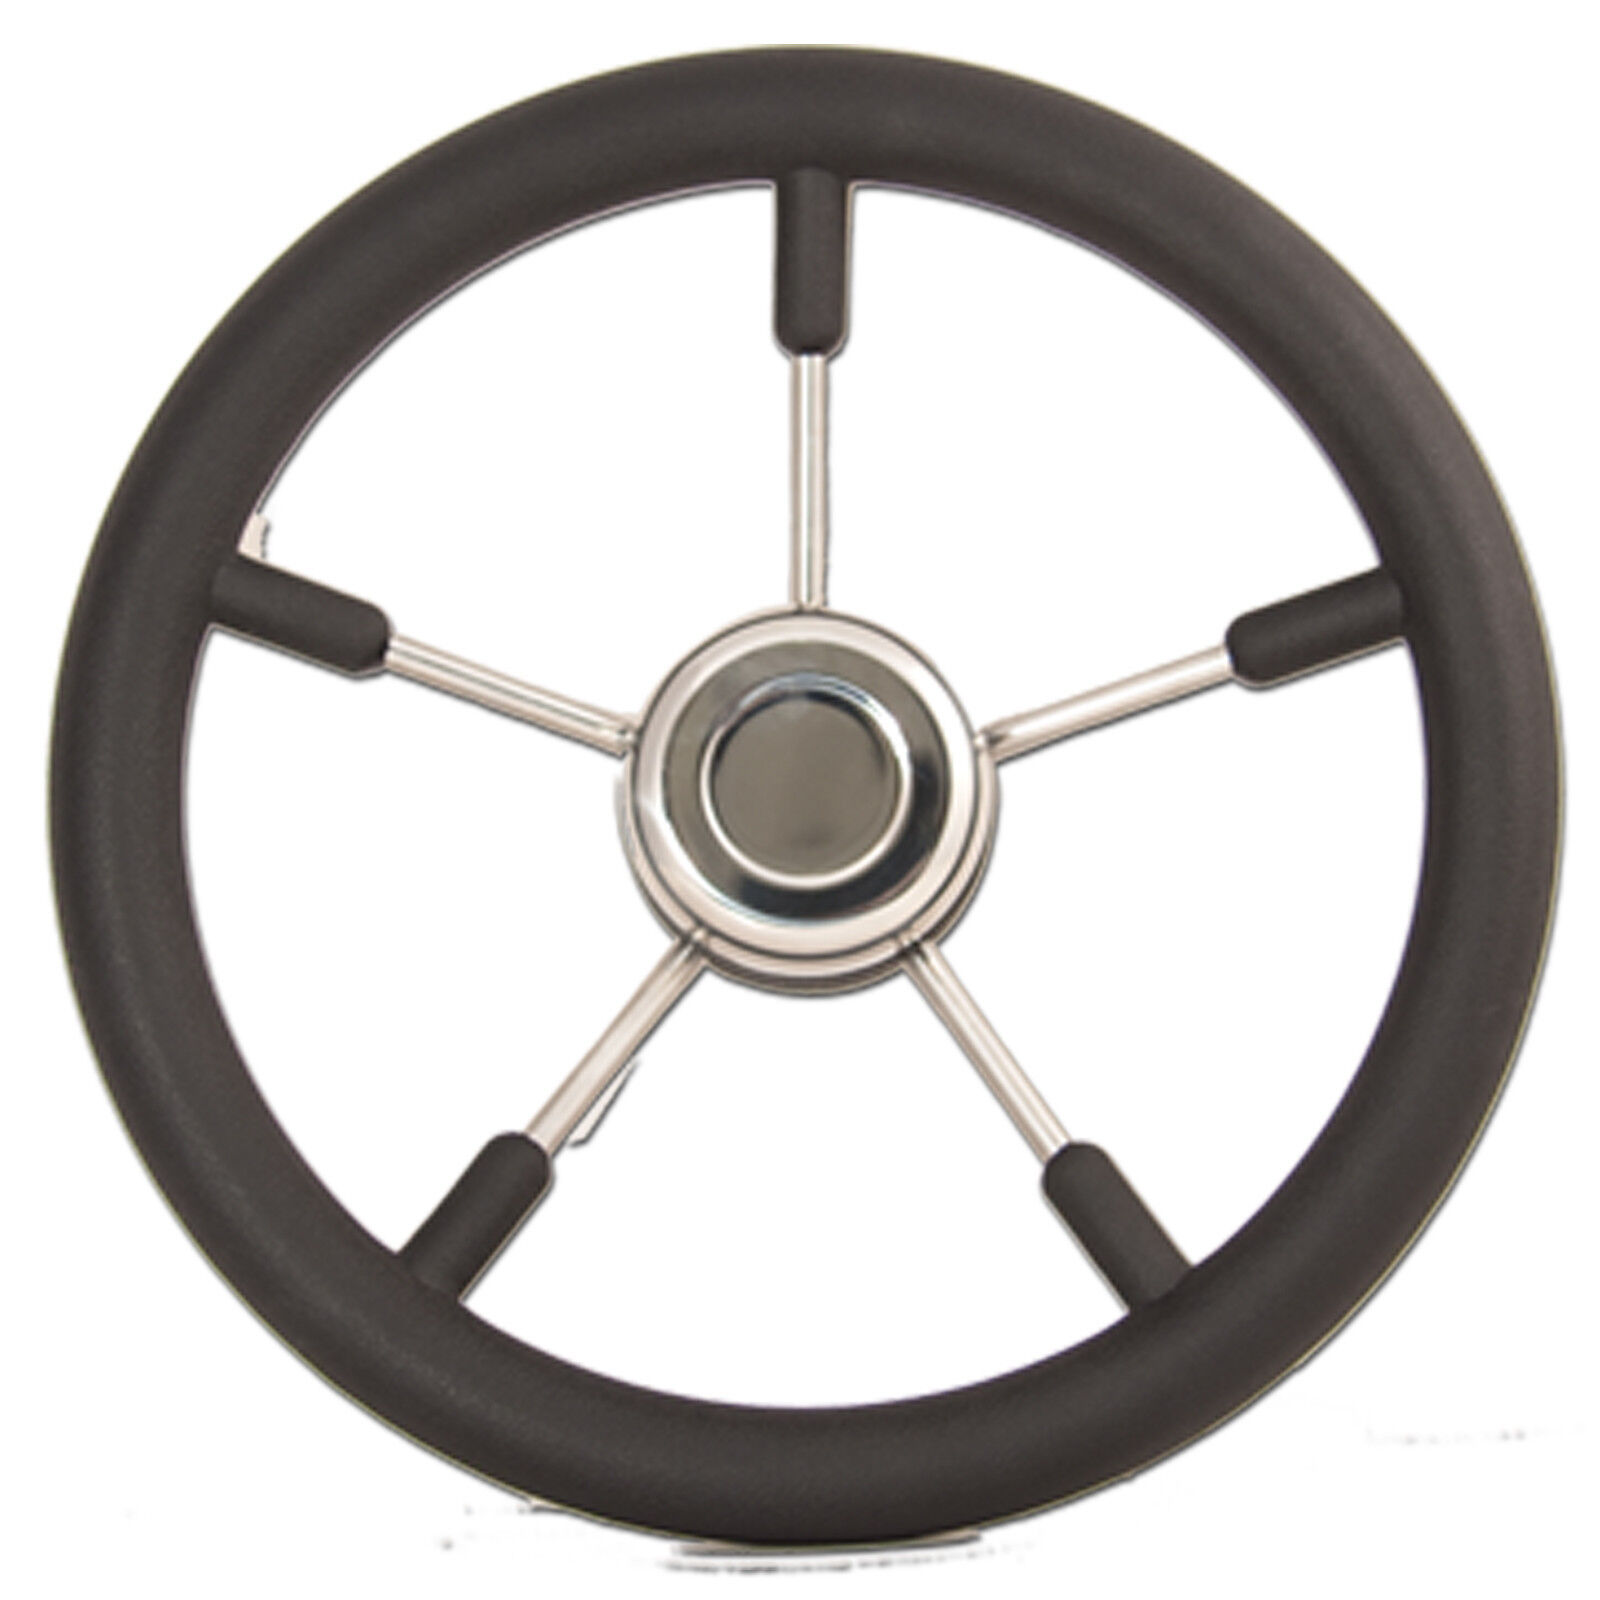 Quality Boat Steering Steering Steering Wheel 5 Spoke S Steel 3 4  Taper Ultraflex 9766bd